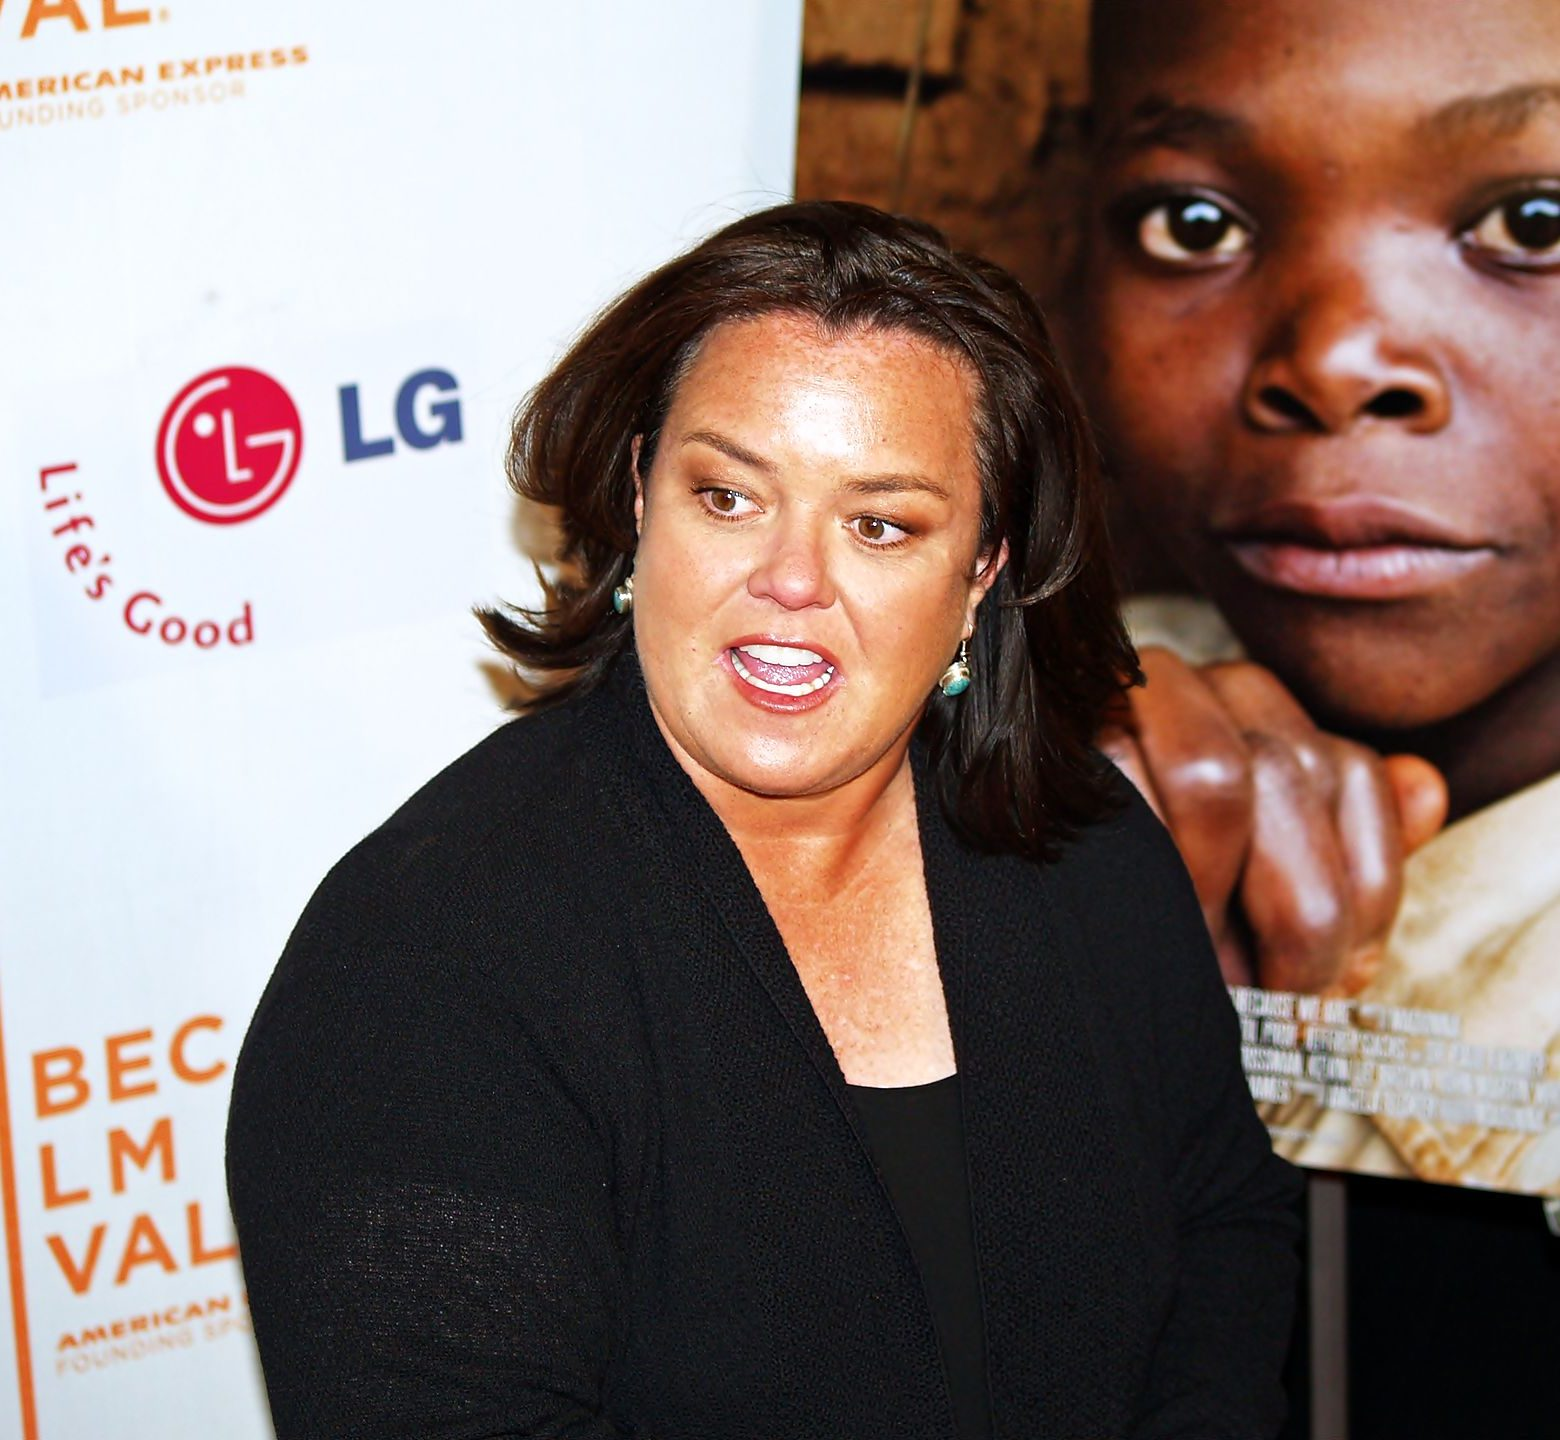 1 9 e1622724232515 20 Things You Never Knew About Rosie O'Donnell